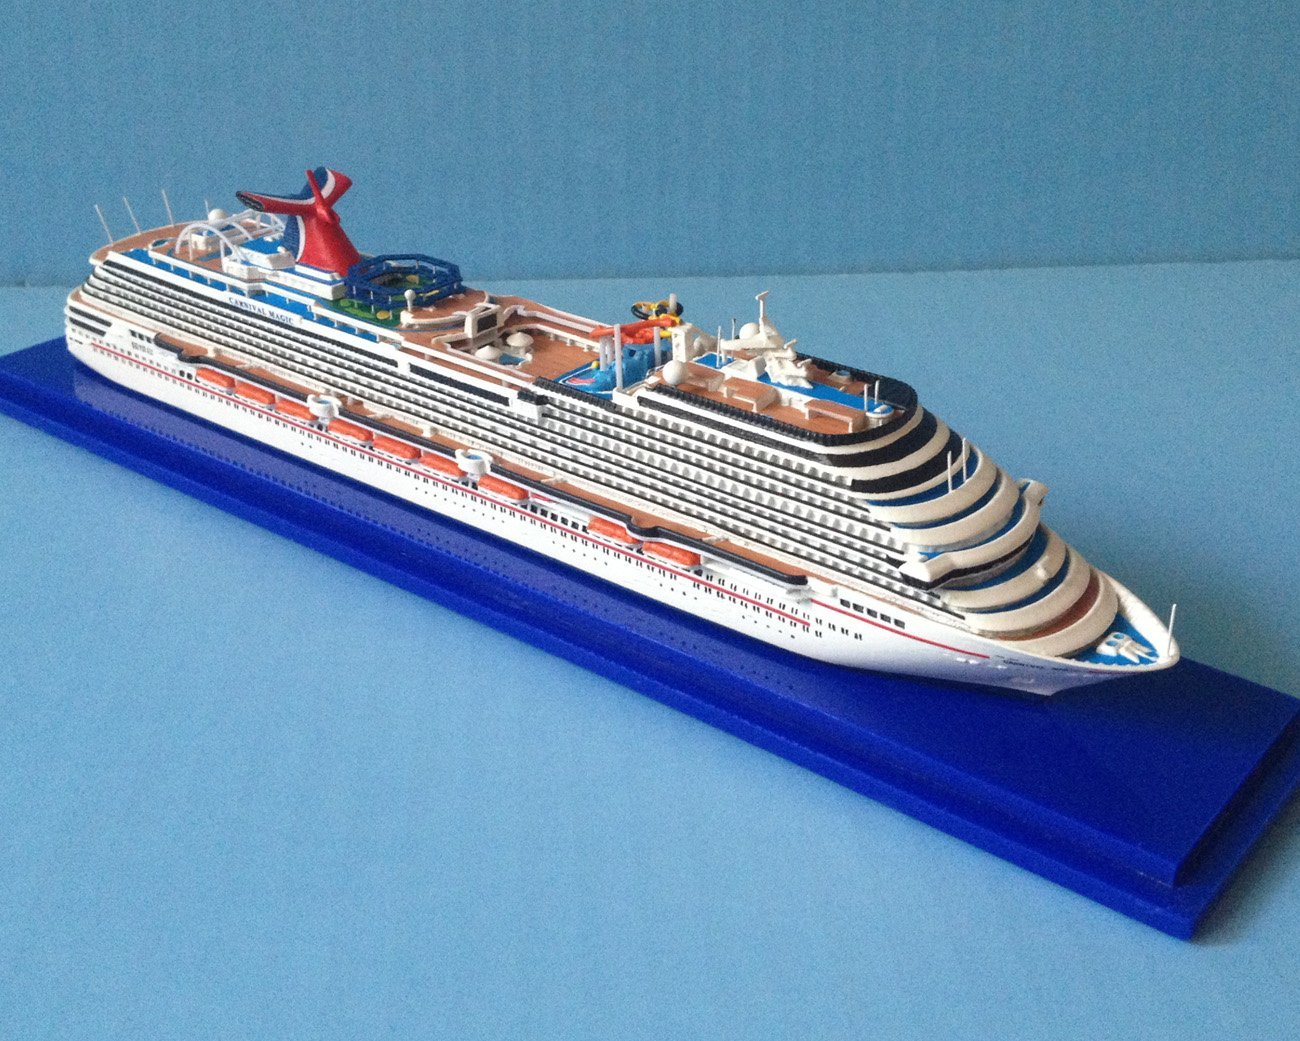 CARNIVAL MAGIC cruise ship model in 1:1250 scale, Collector's Series